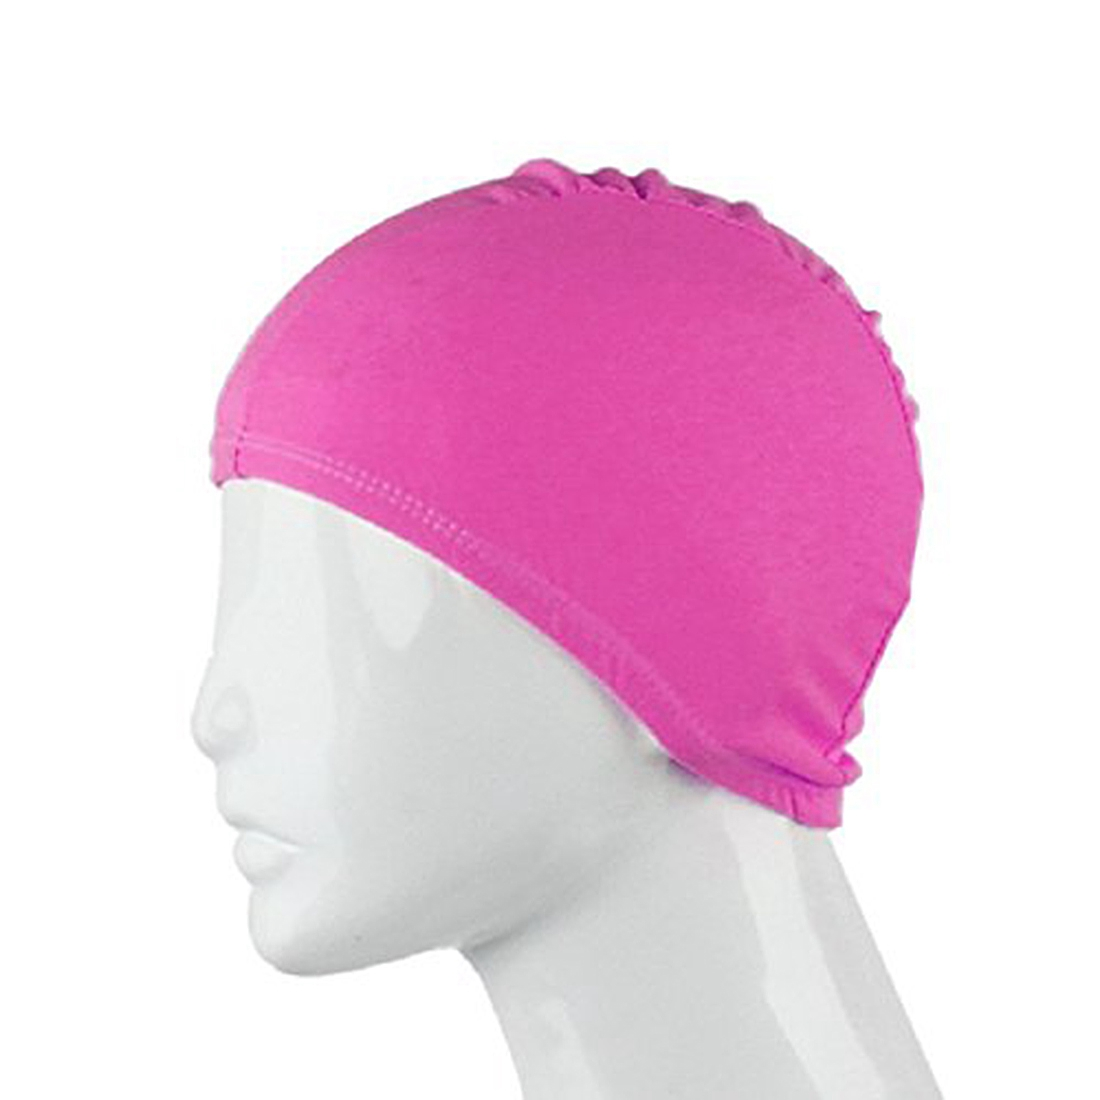 For Adult Swimming Hats Unisex Outdoor Sports Stretch Cap Rose red Lahore